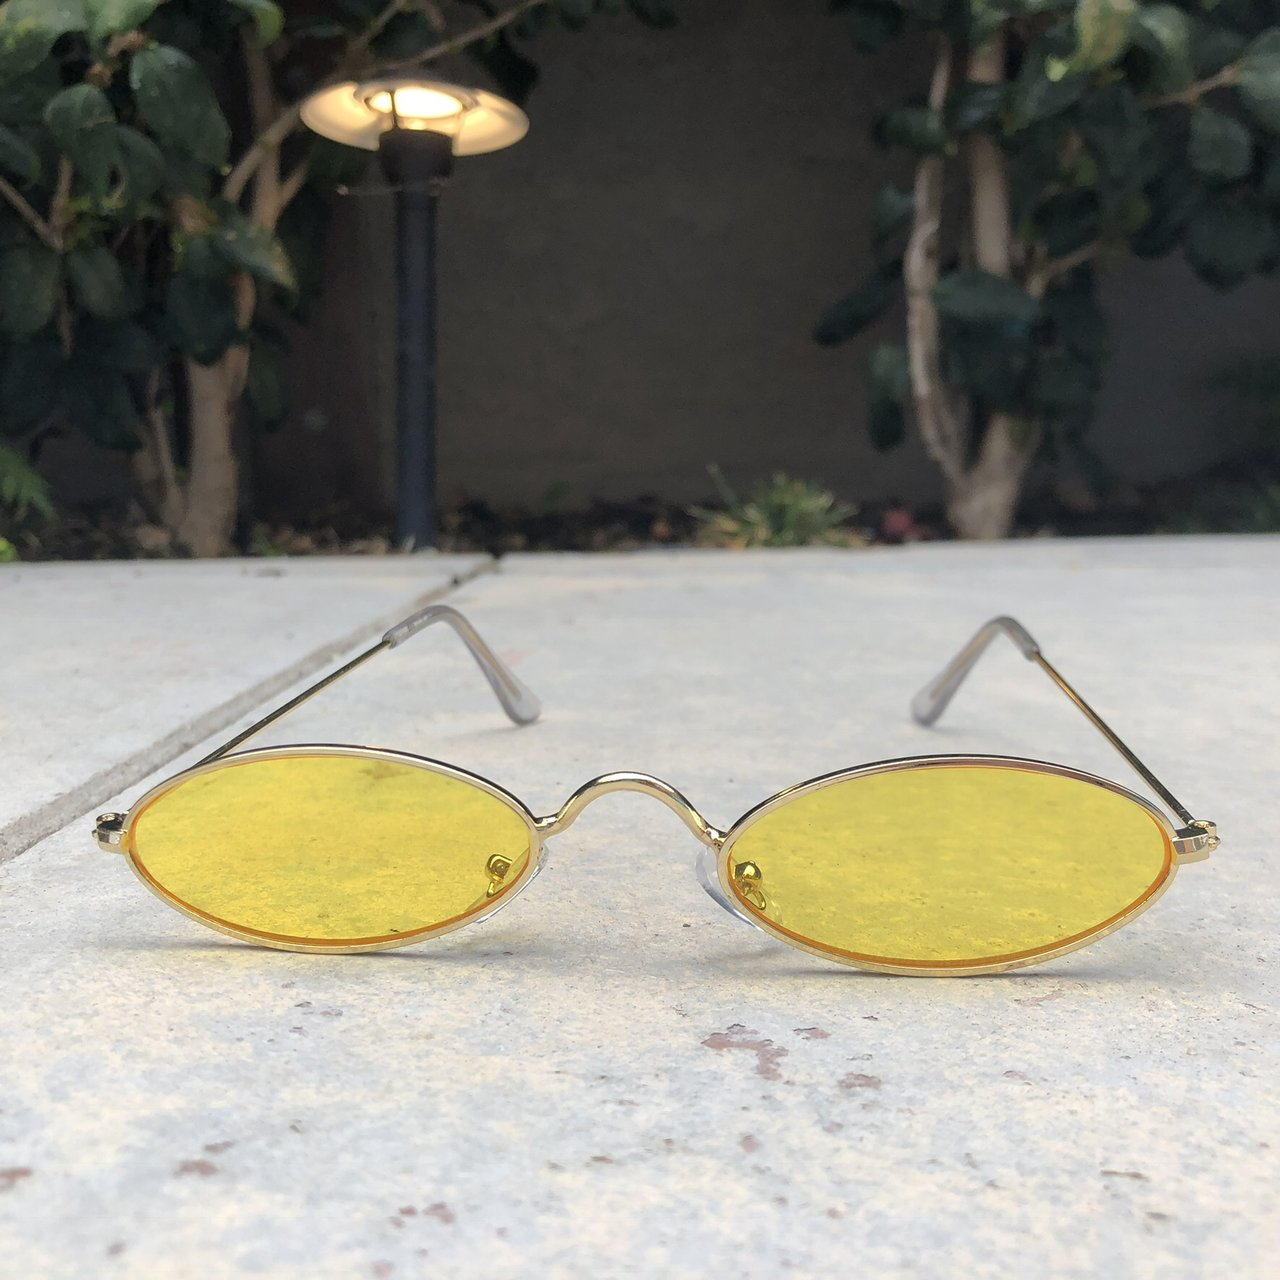 046643e5d1 slim oval small sunglasses. Yellow tinted lenses with gold - Depop